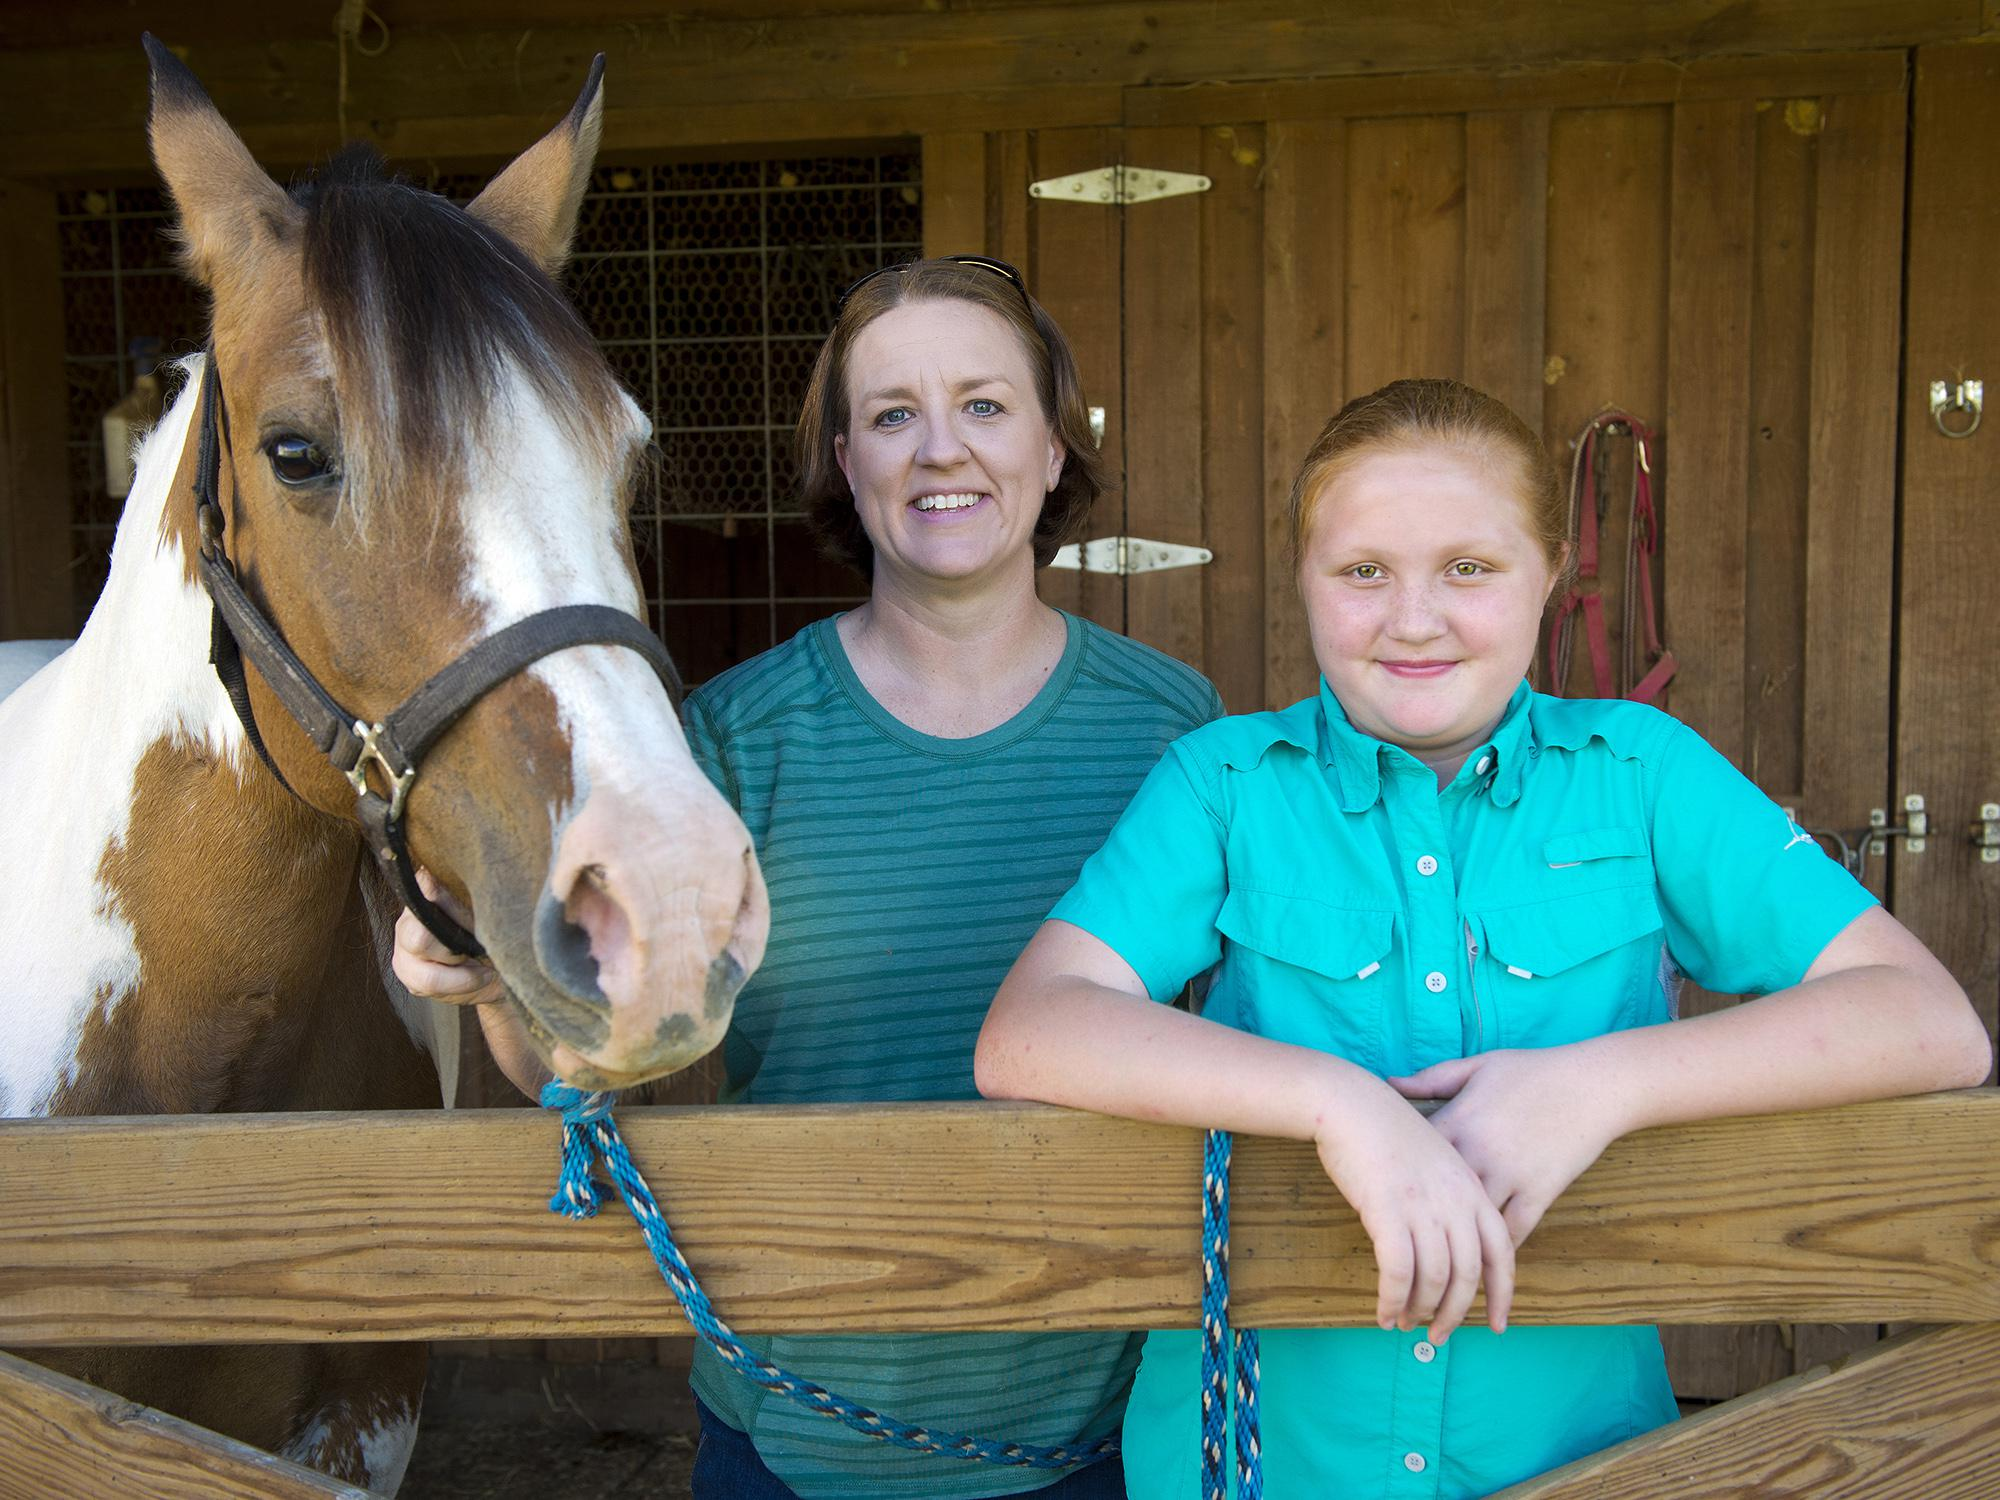 A young girl and her mother are pictured with their horse.